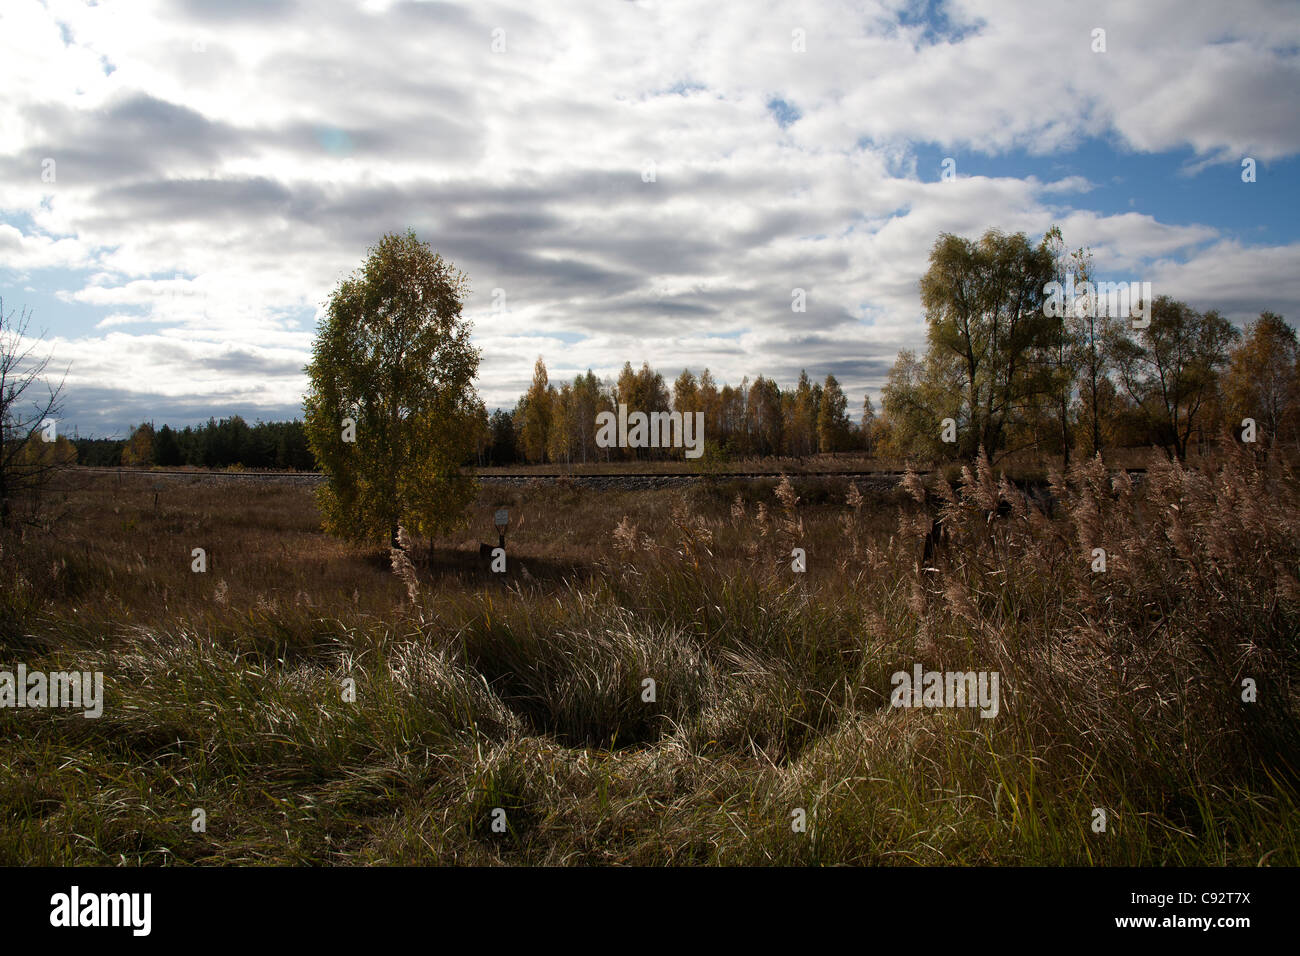 Radioactive countryside in the 10km exclusion zone Chernobyl Ukraine - Stock Image